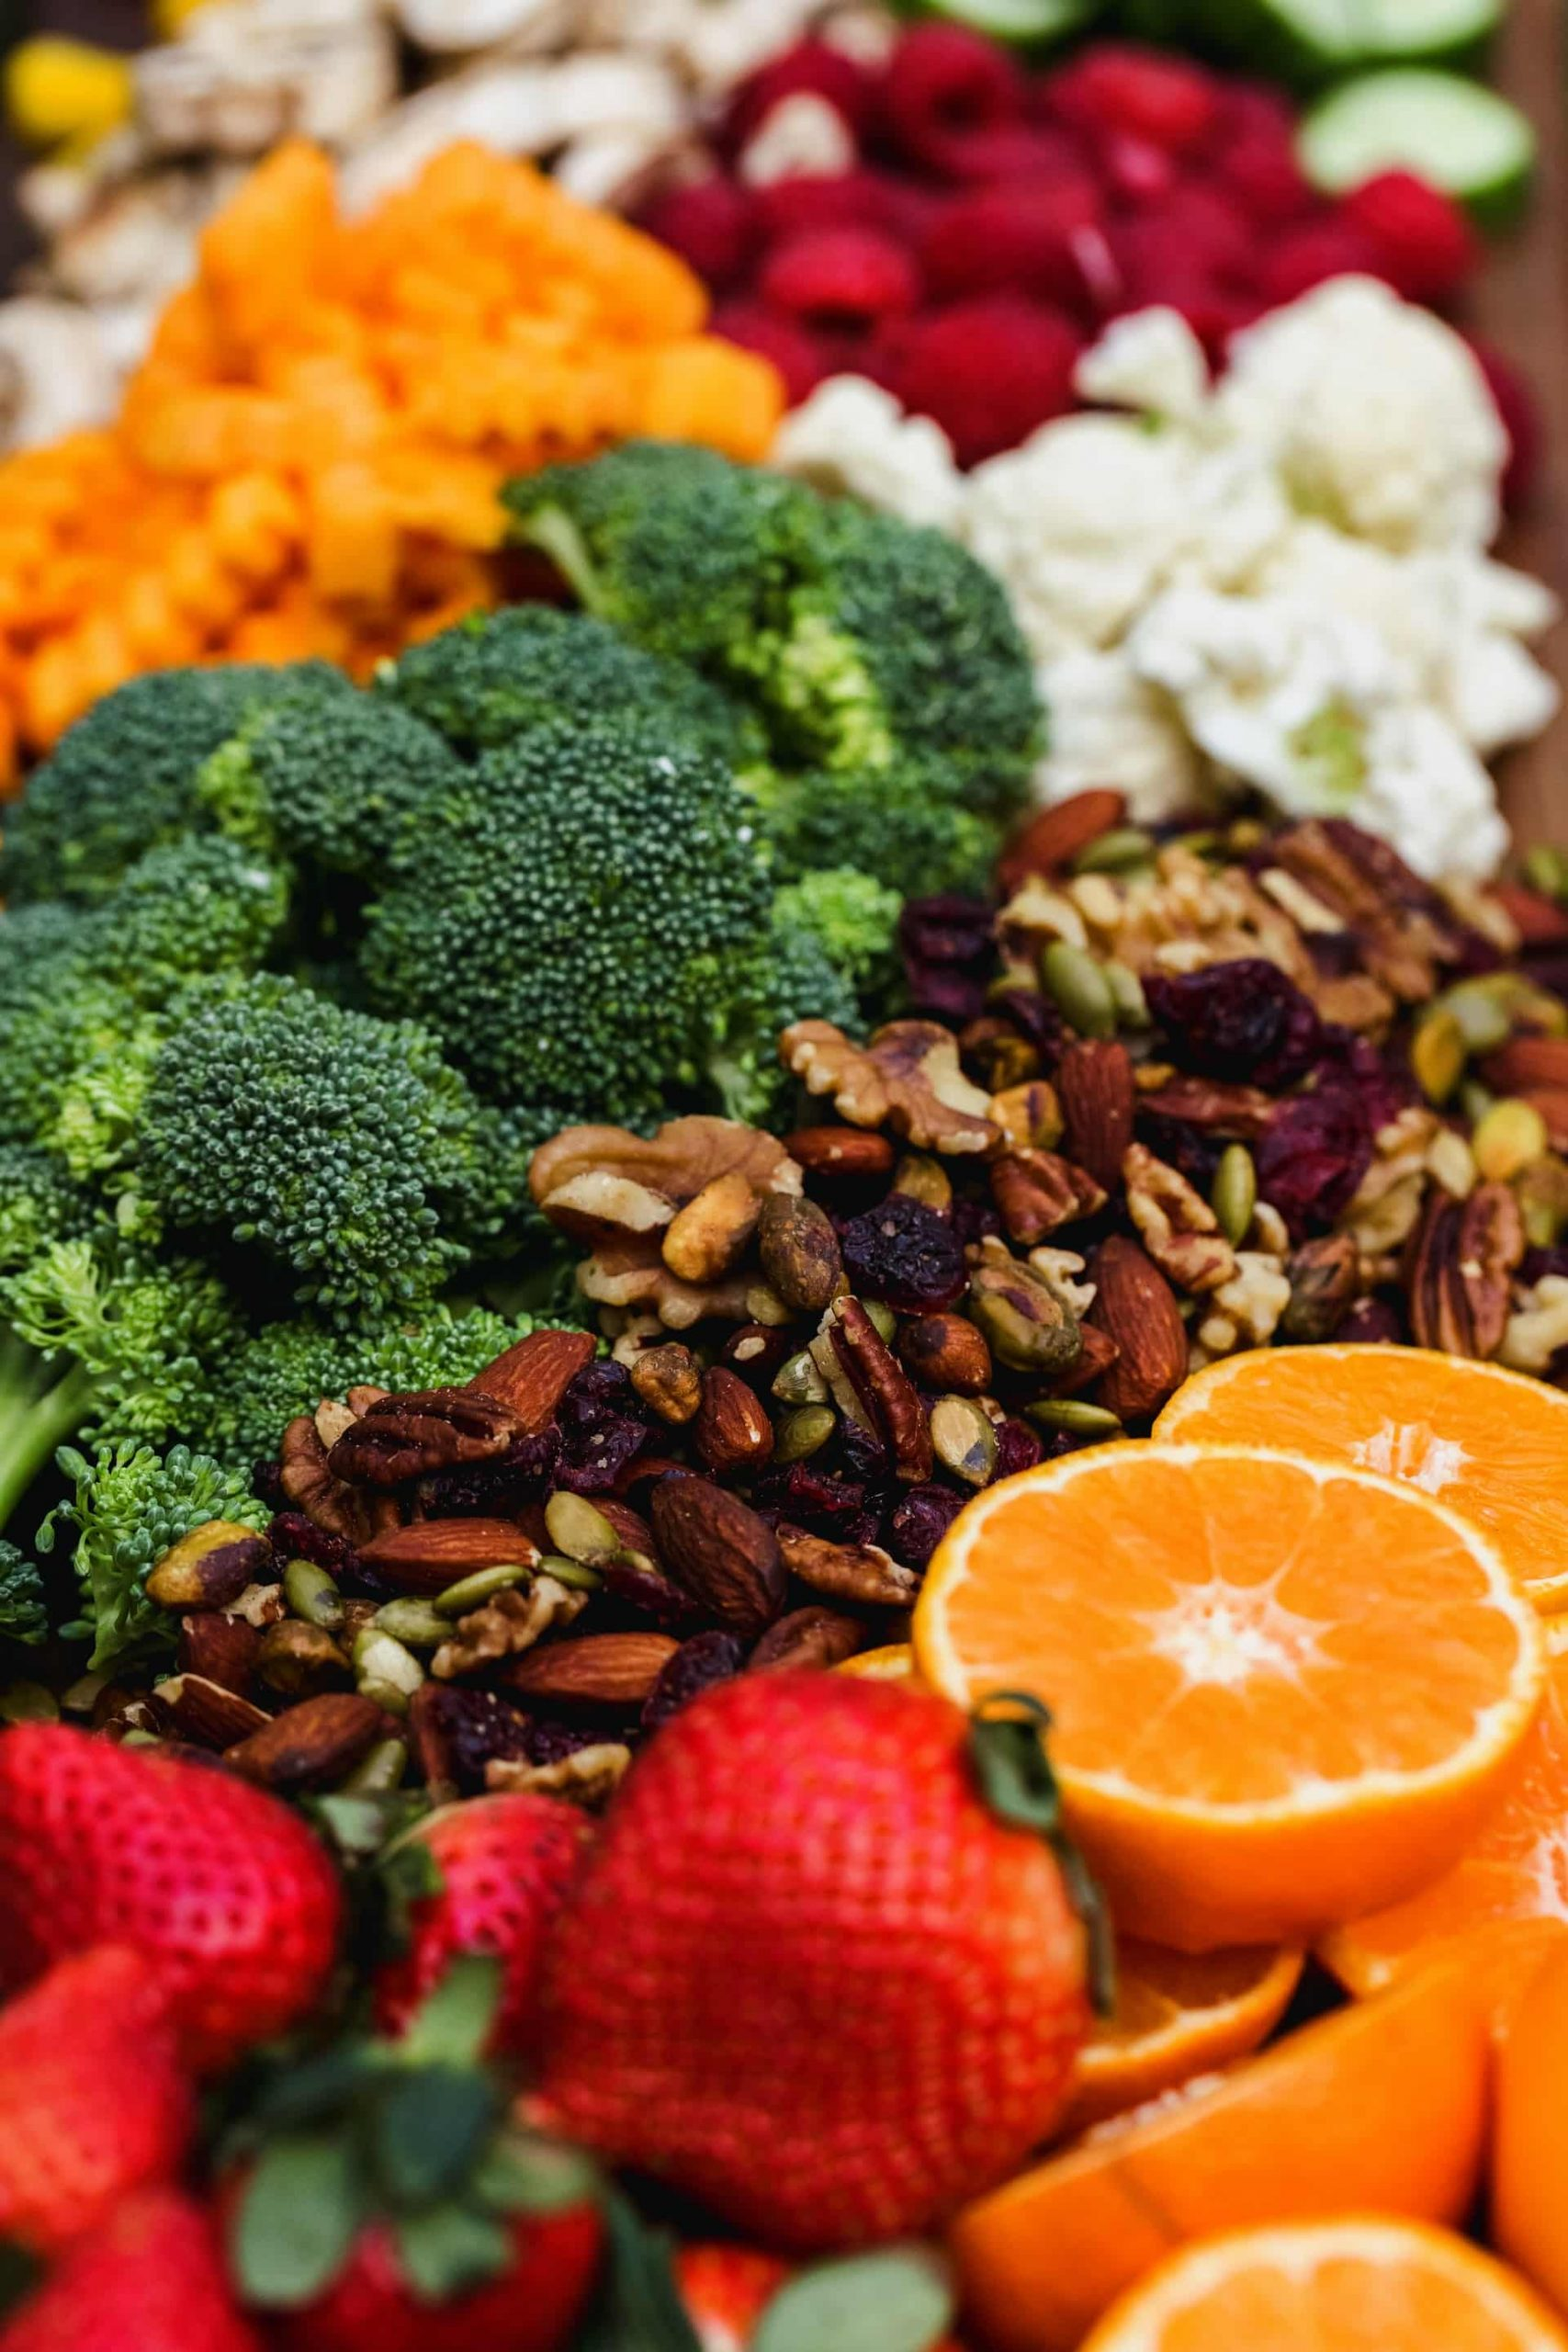 Healthy Foods To Add To Your Diet For Better Health